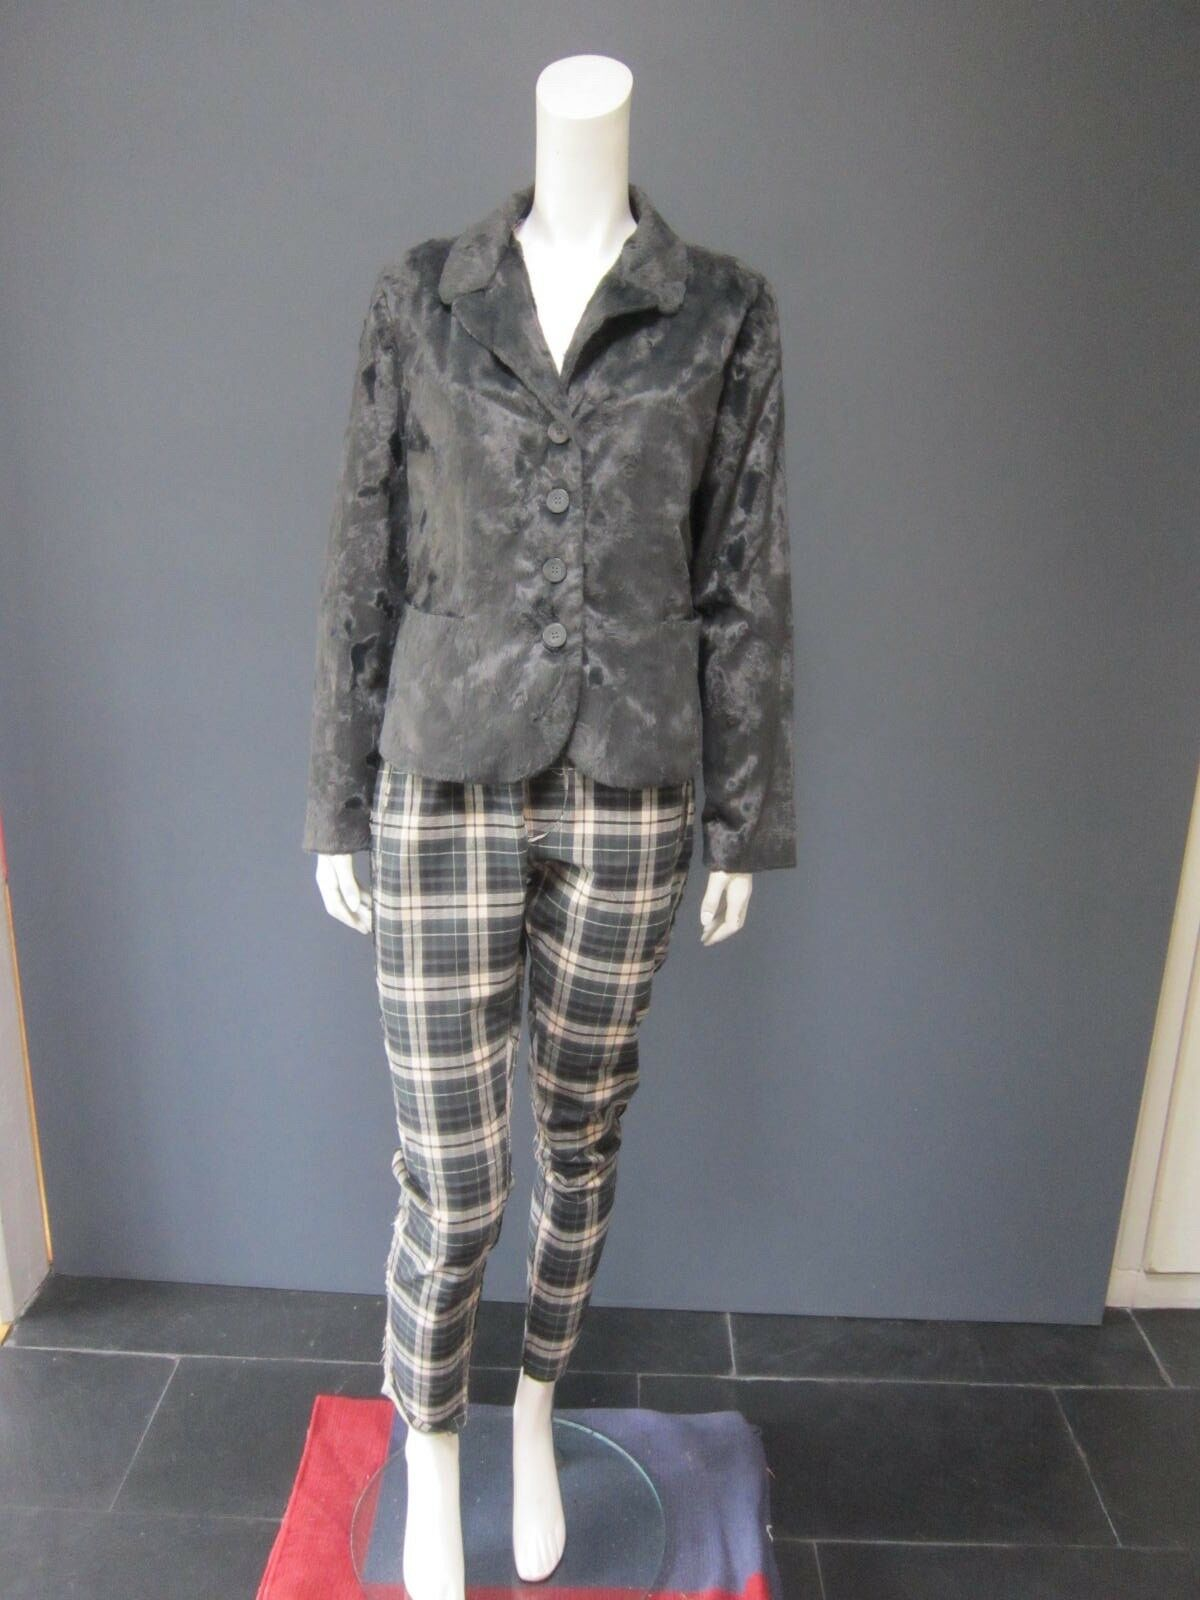 NOVEMBER trousers   pants  NEW  size M  98 % cotton     tartan & grey